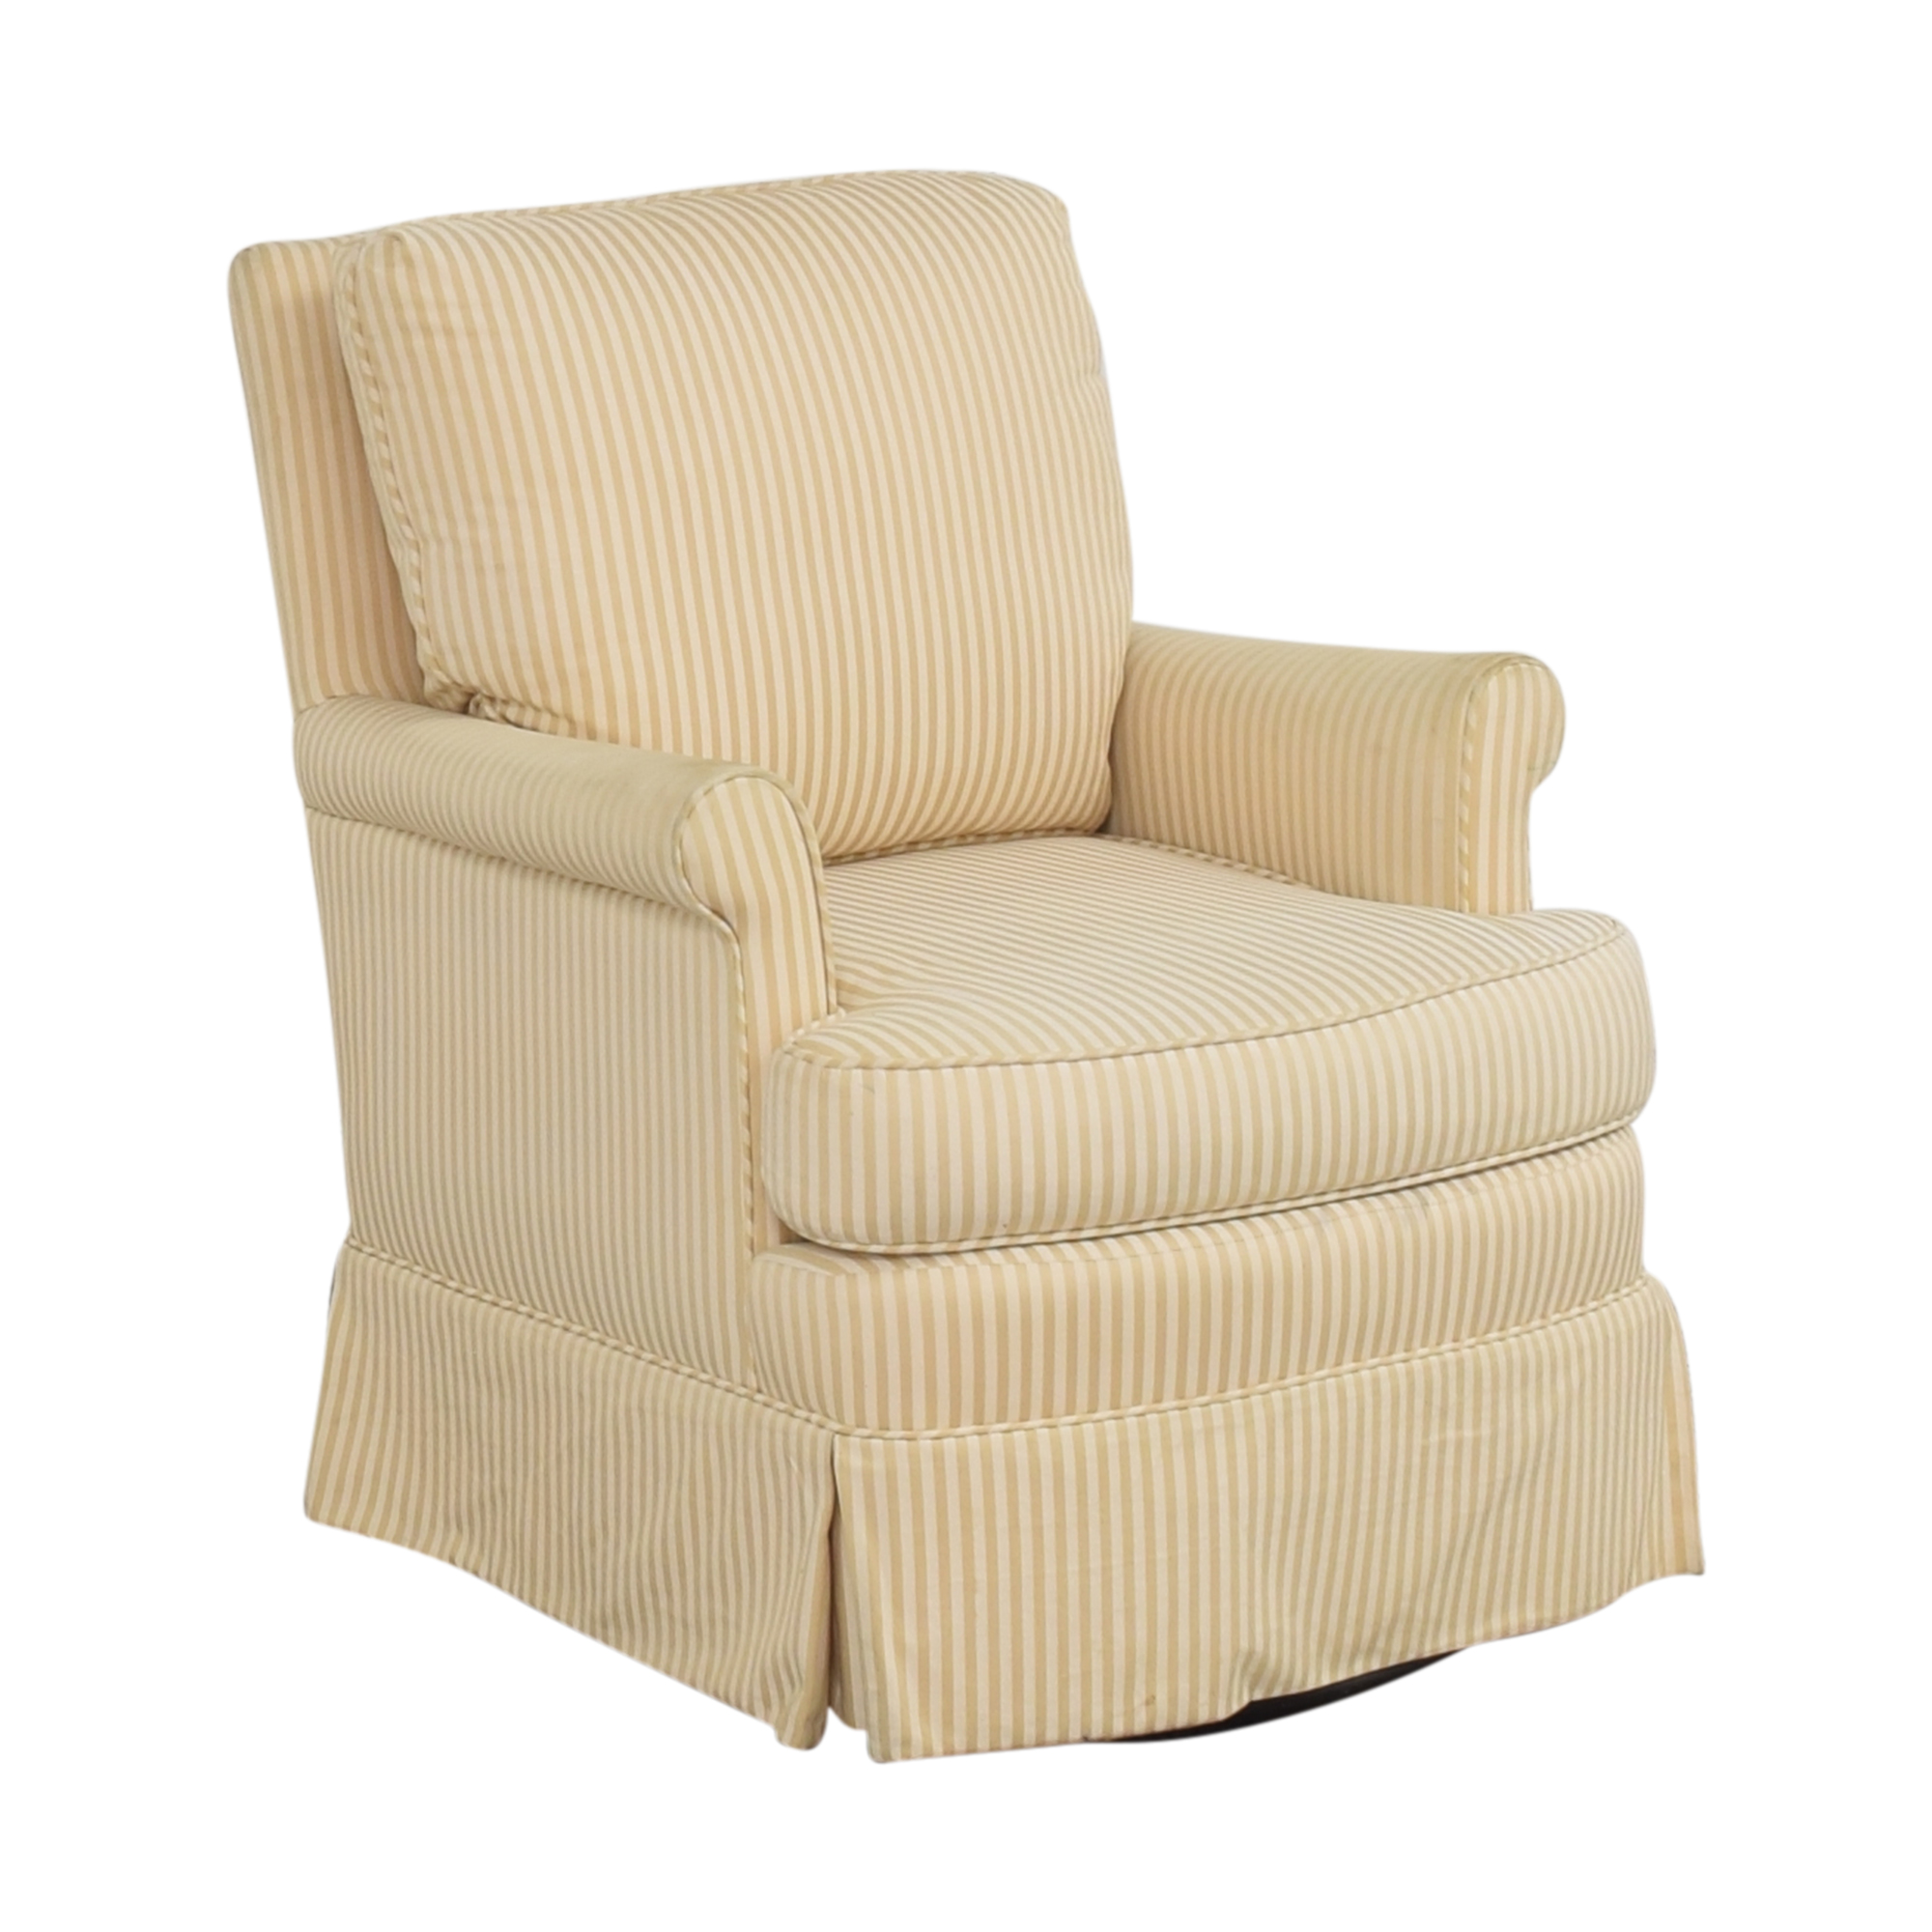 Cox Manufacturing Swivel Glider Chair / Chairs